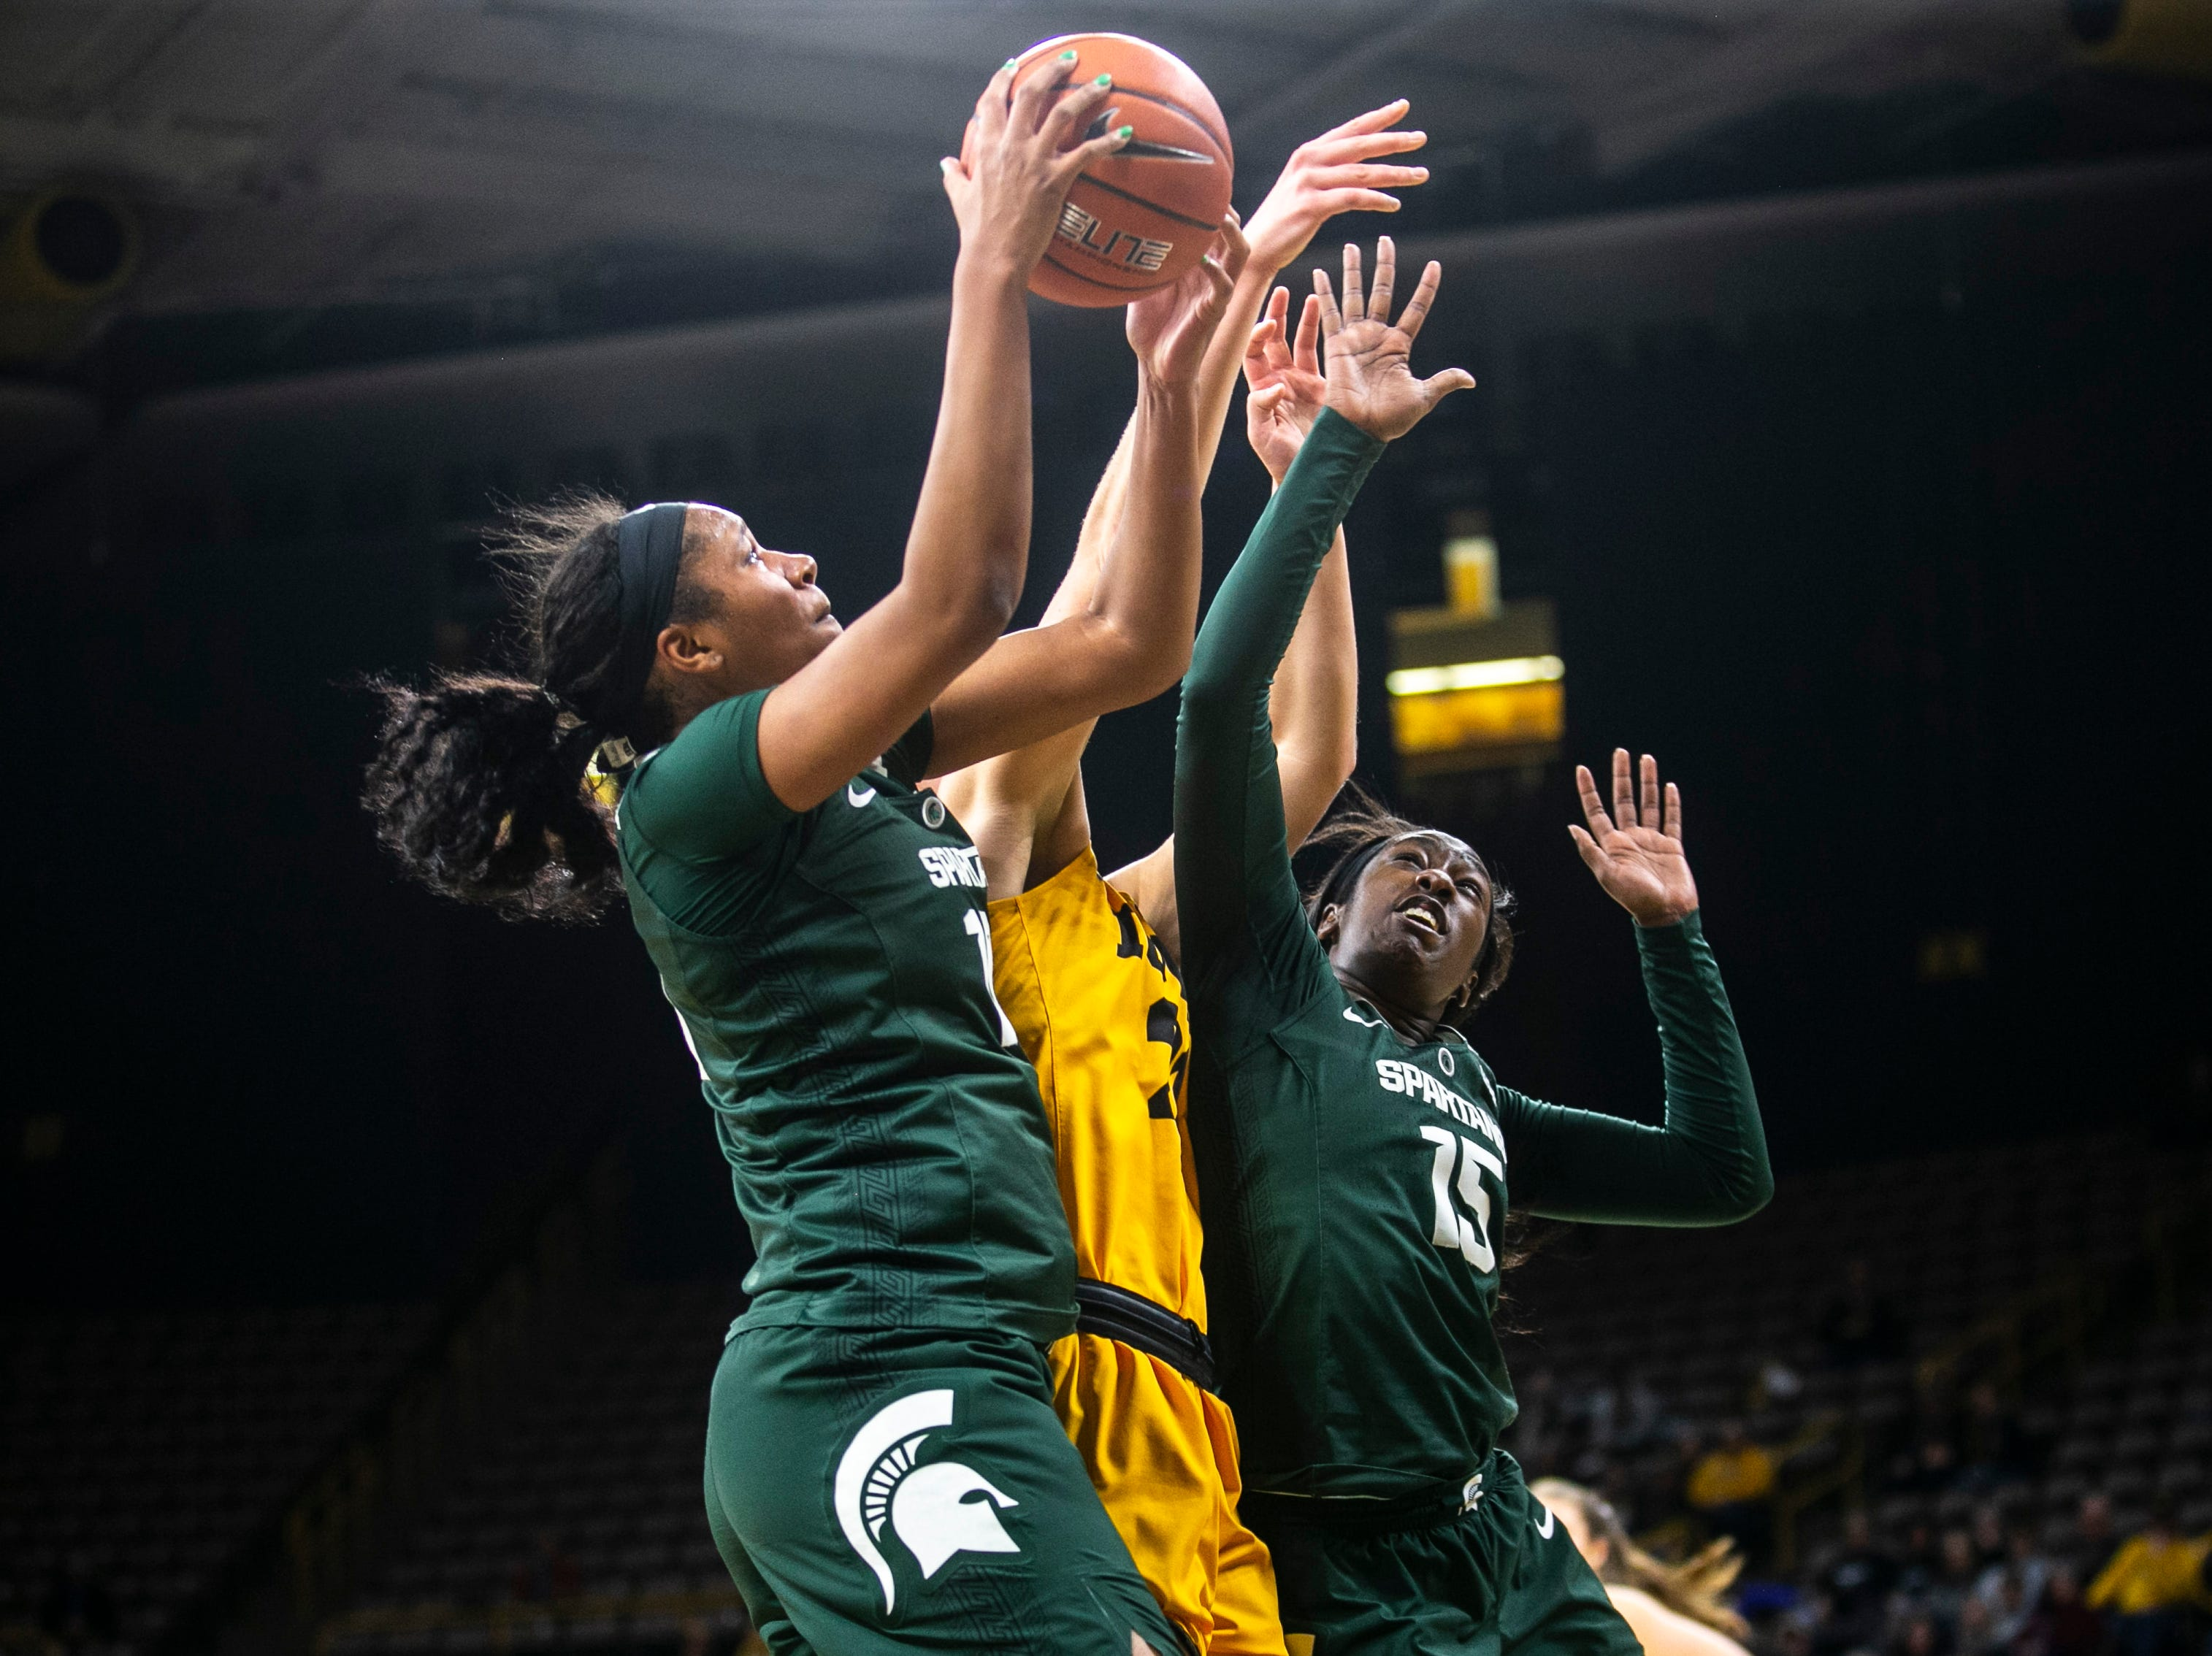 Michigan State forward Sidney Cooks (10) pulls down a rebound against Iowa's Monika Czinano (25) with Michigan State forward Victoria Gaines (15) during a NCAA Big Ten Conference women's basketball game on Thursday, Feb. 7, 2019 at Carver-Hawkeye Arena in Iowa City, Iowa.